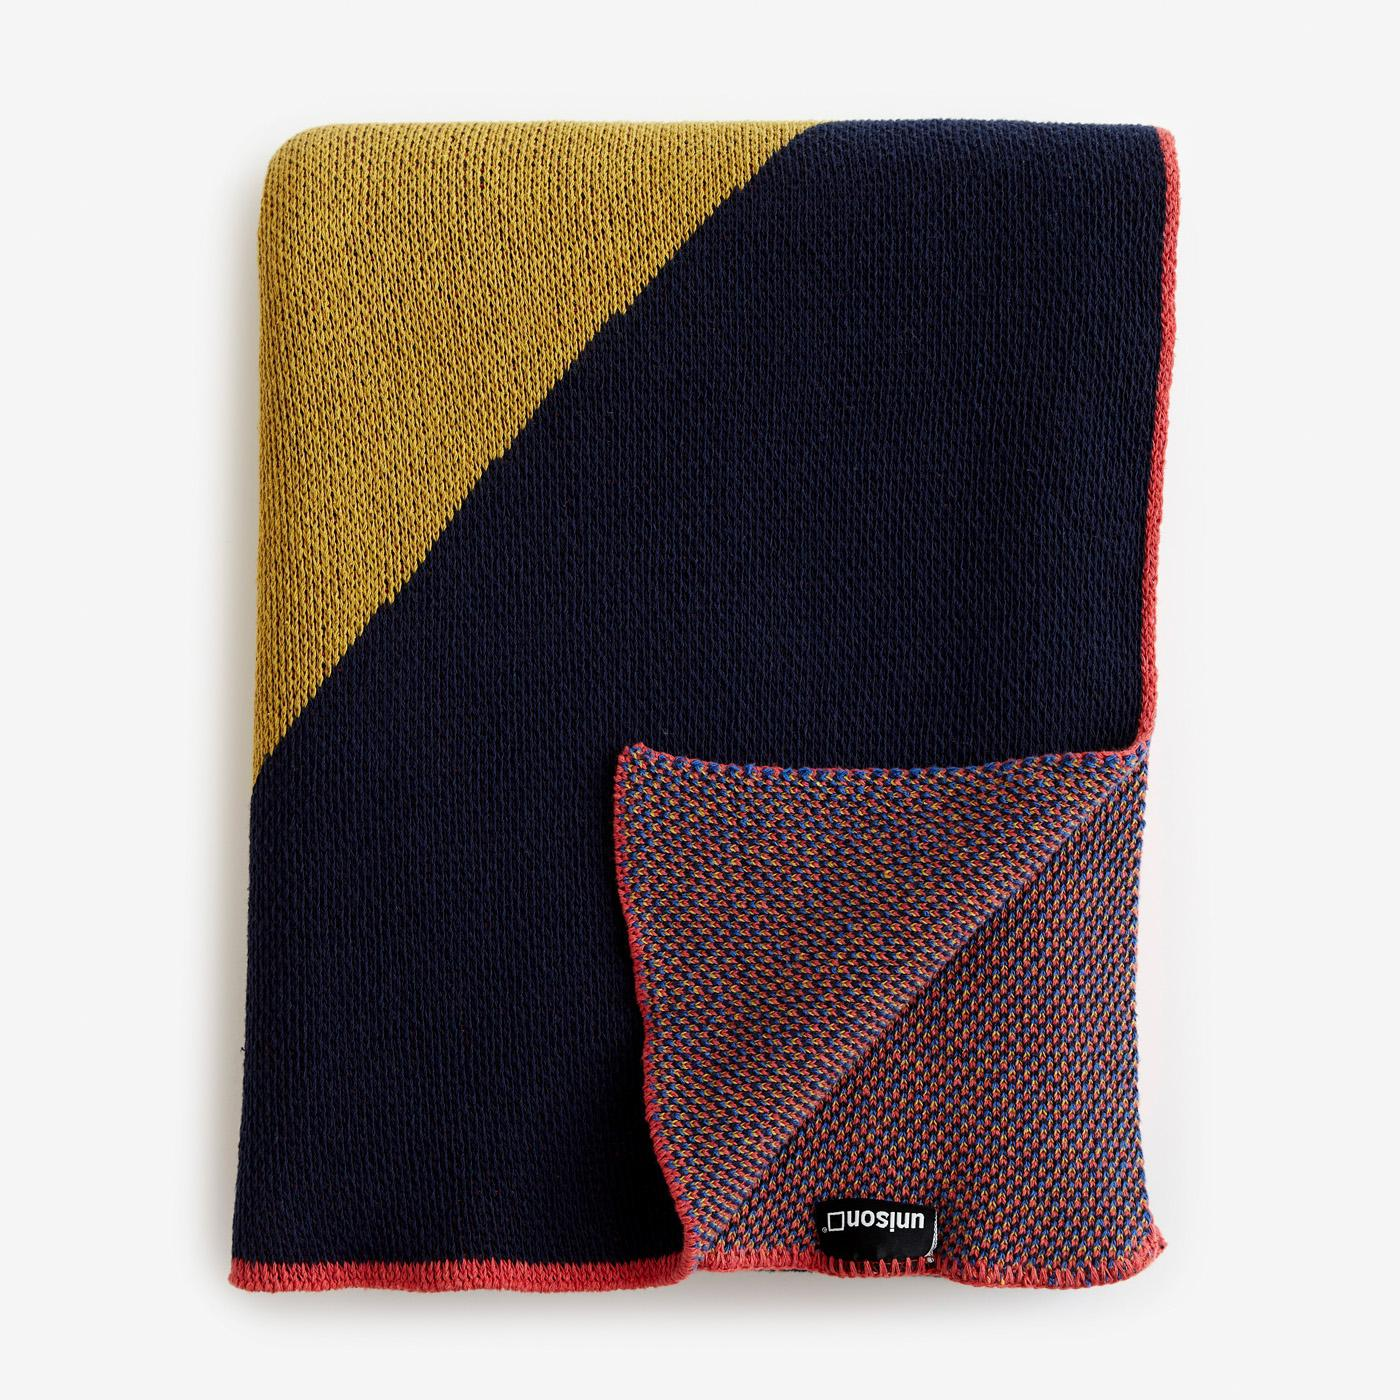 Turin Coral Knit Throw Blanket